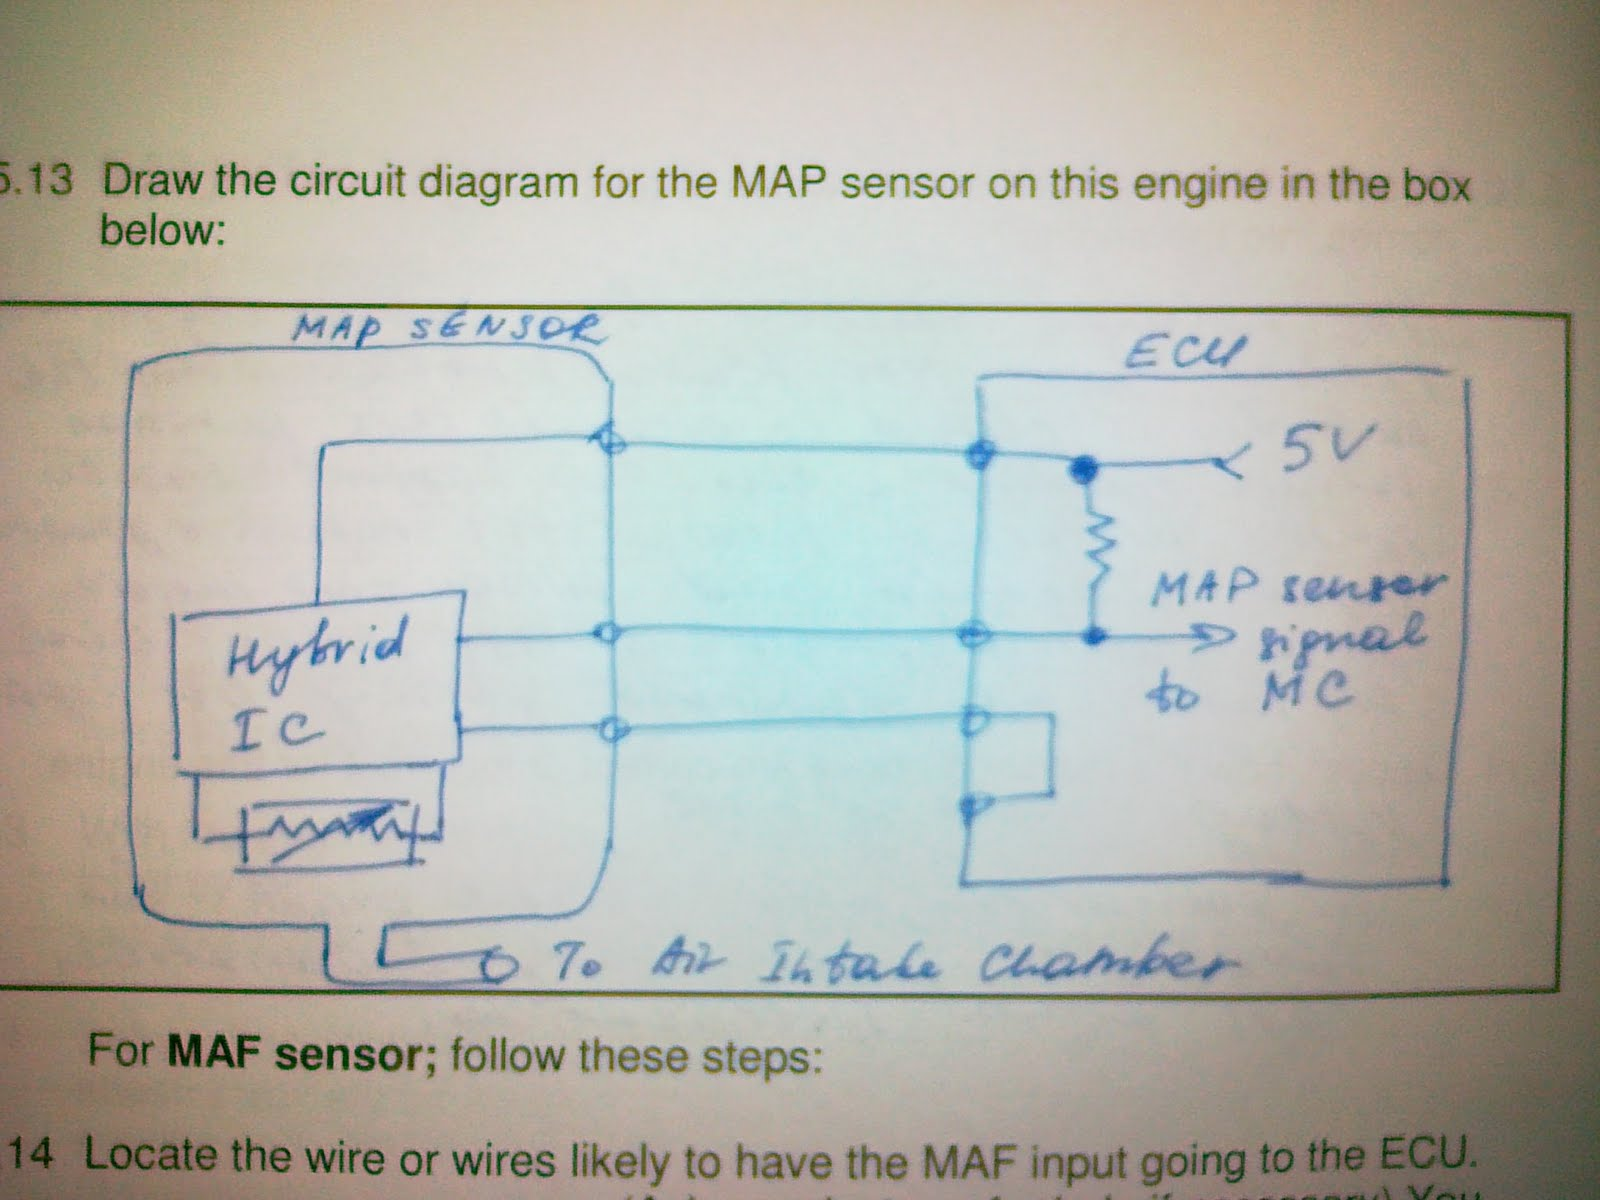 map sensor wire diagram 4 [ 1600 x 1200 Pixel ]